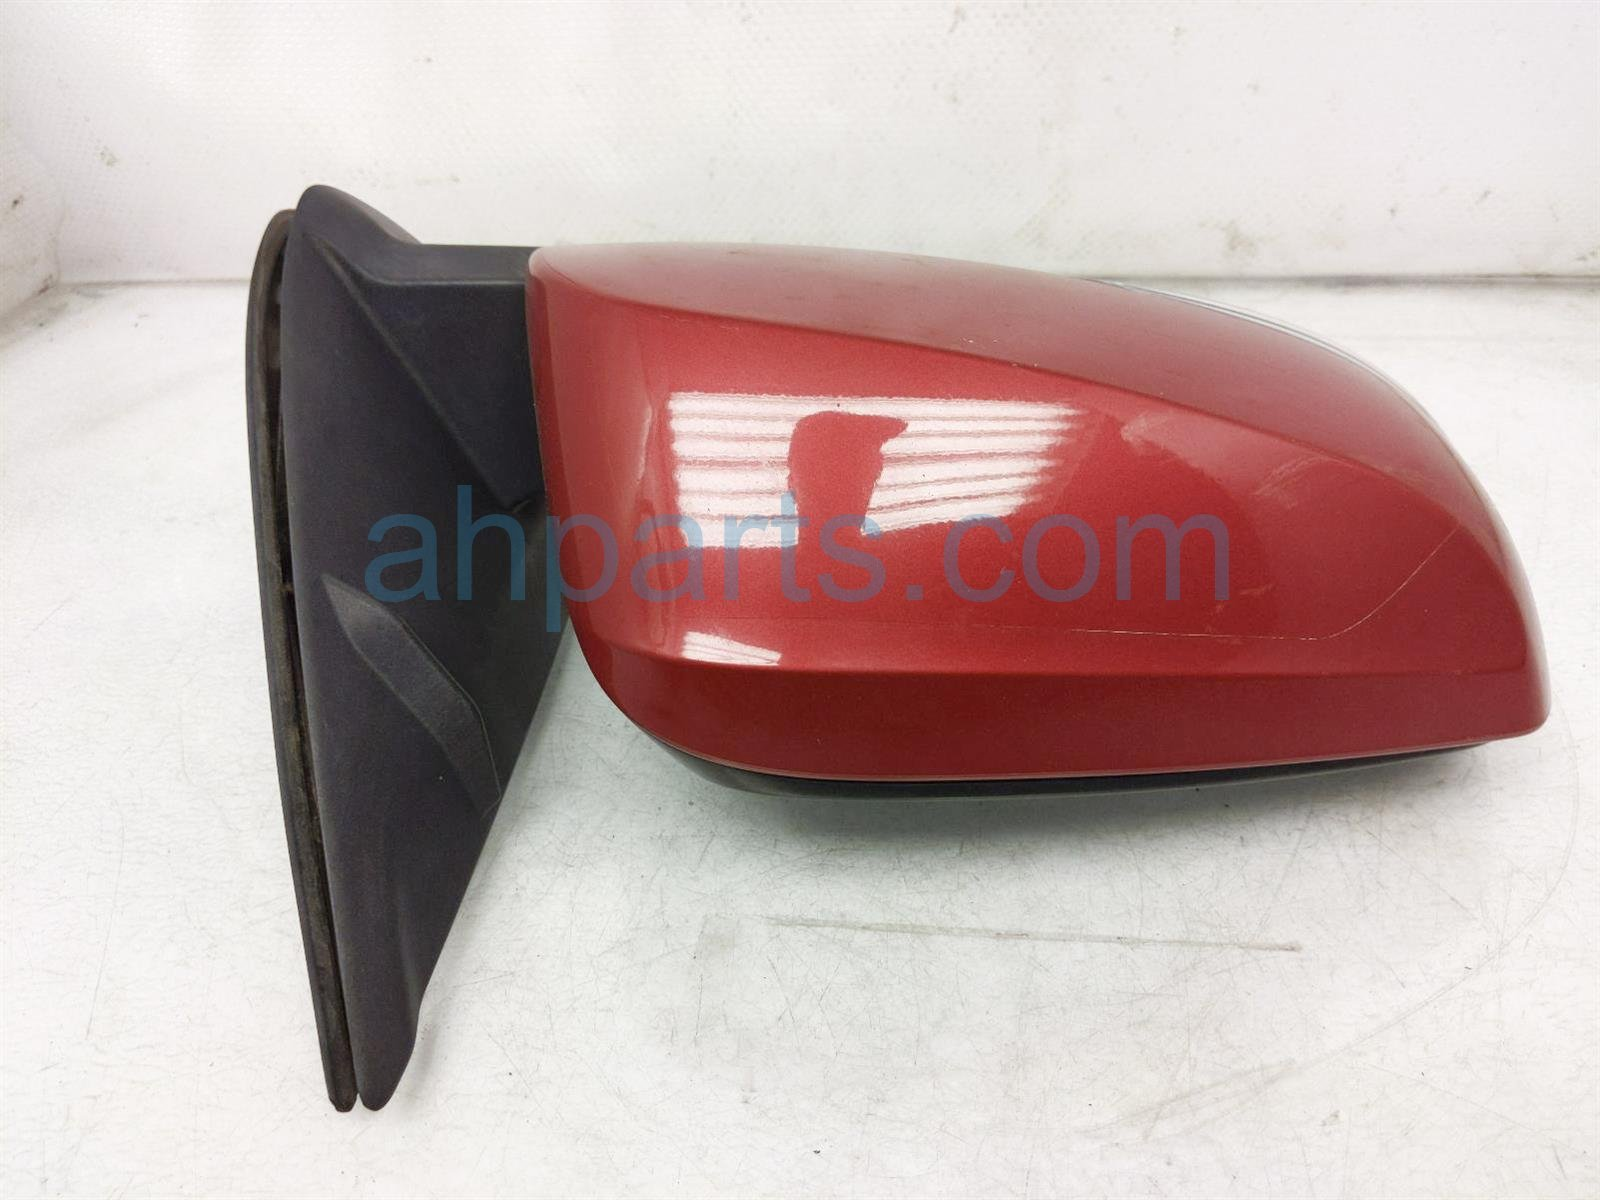 2017 Toyota Tacoma Rear Passenger Side View Mirror   Red 87910 04230 Replacement